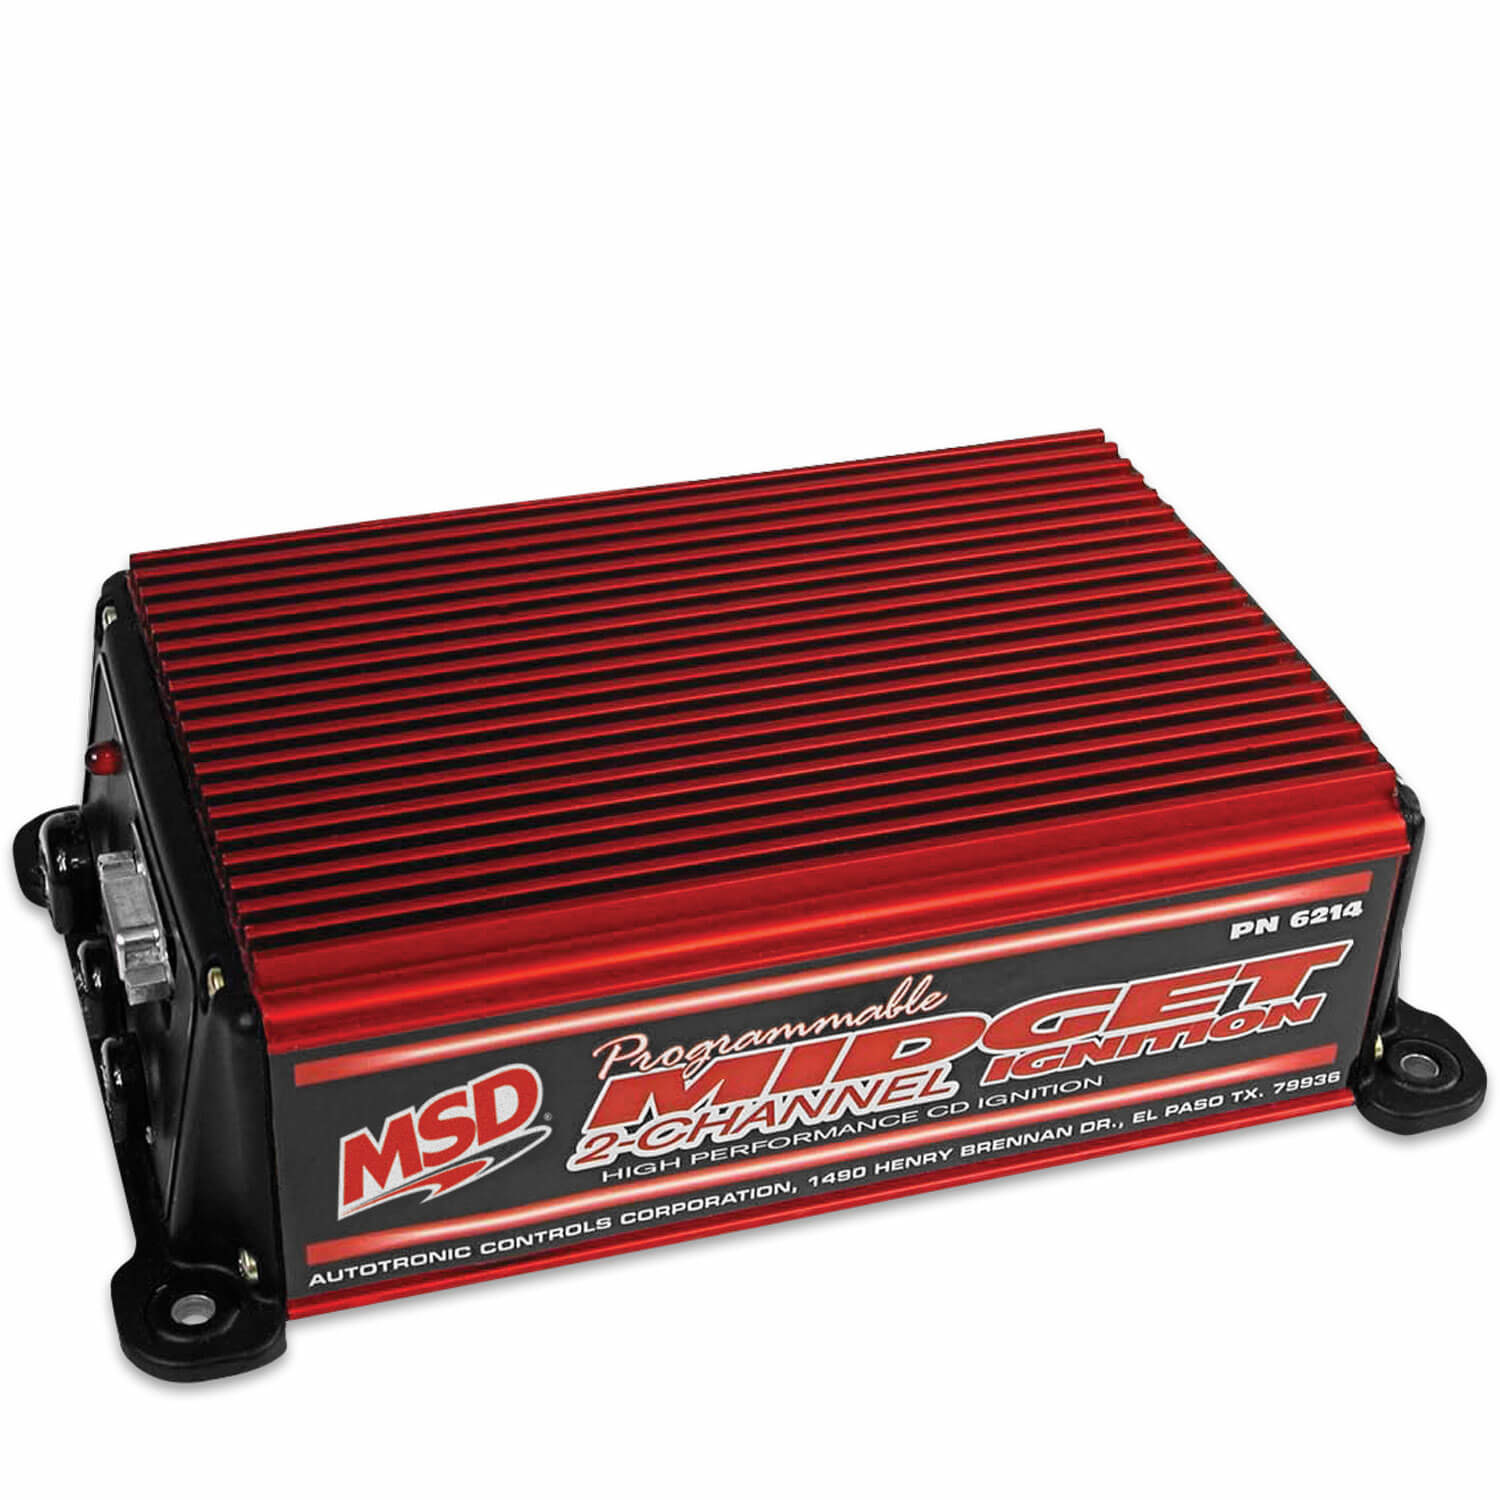 MSD Ignition 6214 Ignitions   Ignitionproducts eu